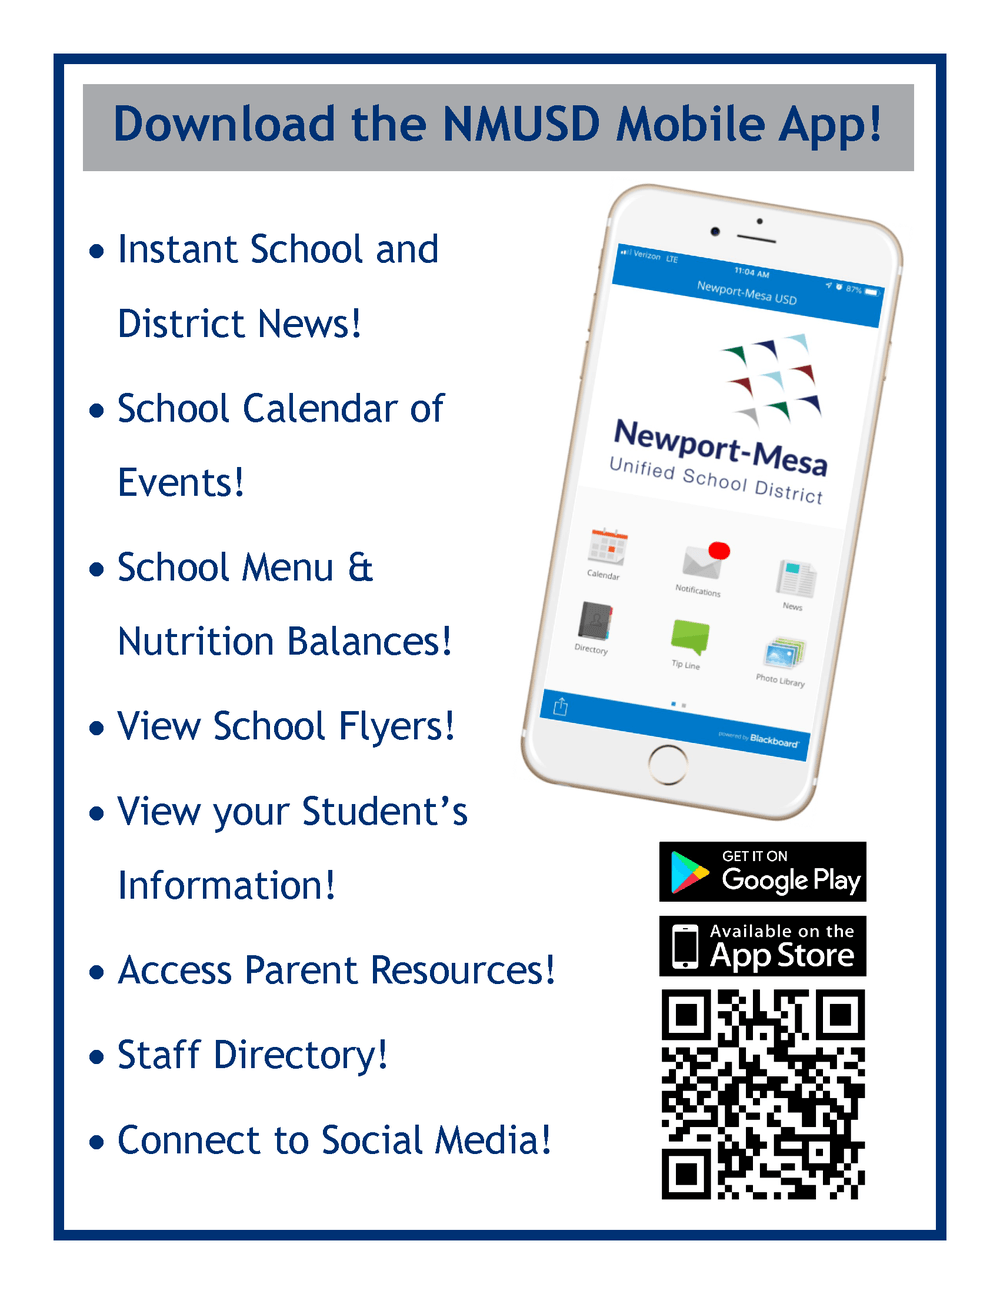 NMUSD Mobile Application